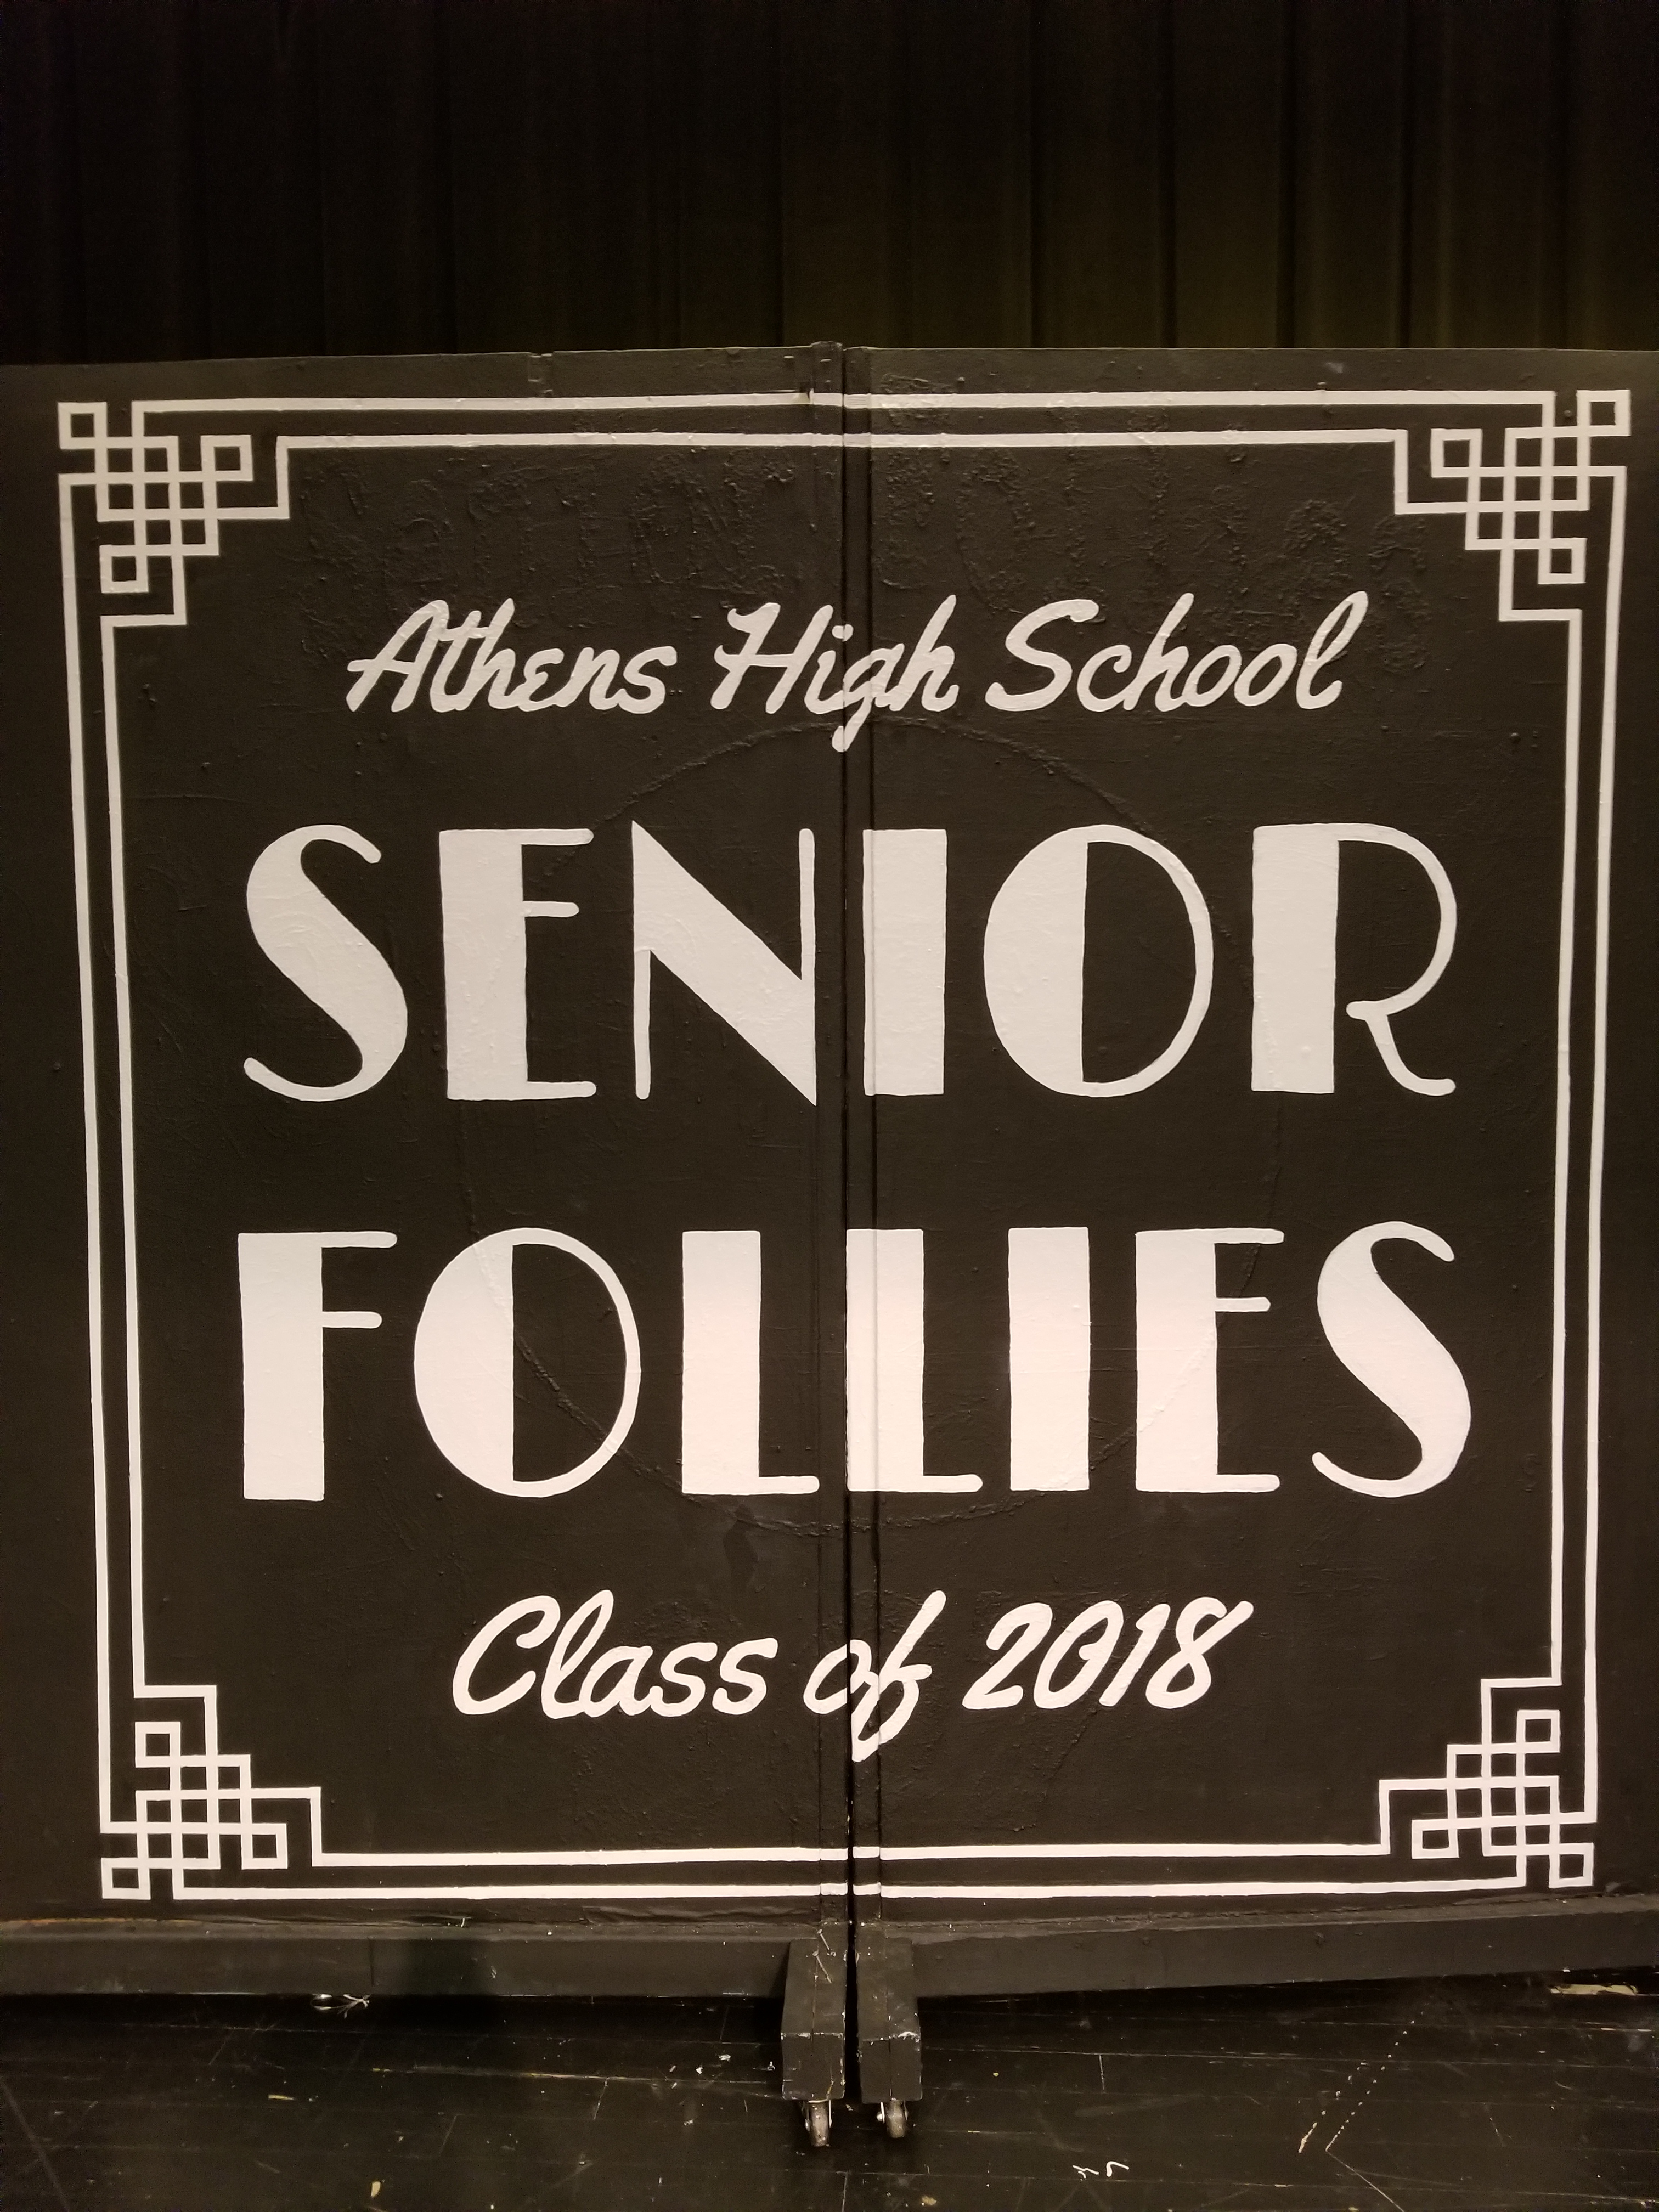 2018 AHS Senior Follies